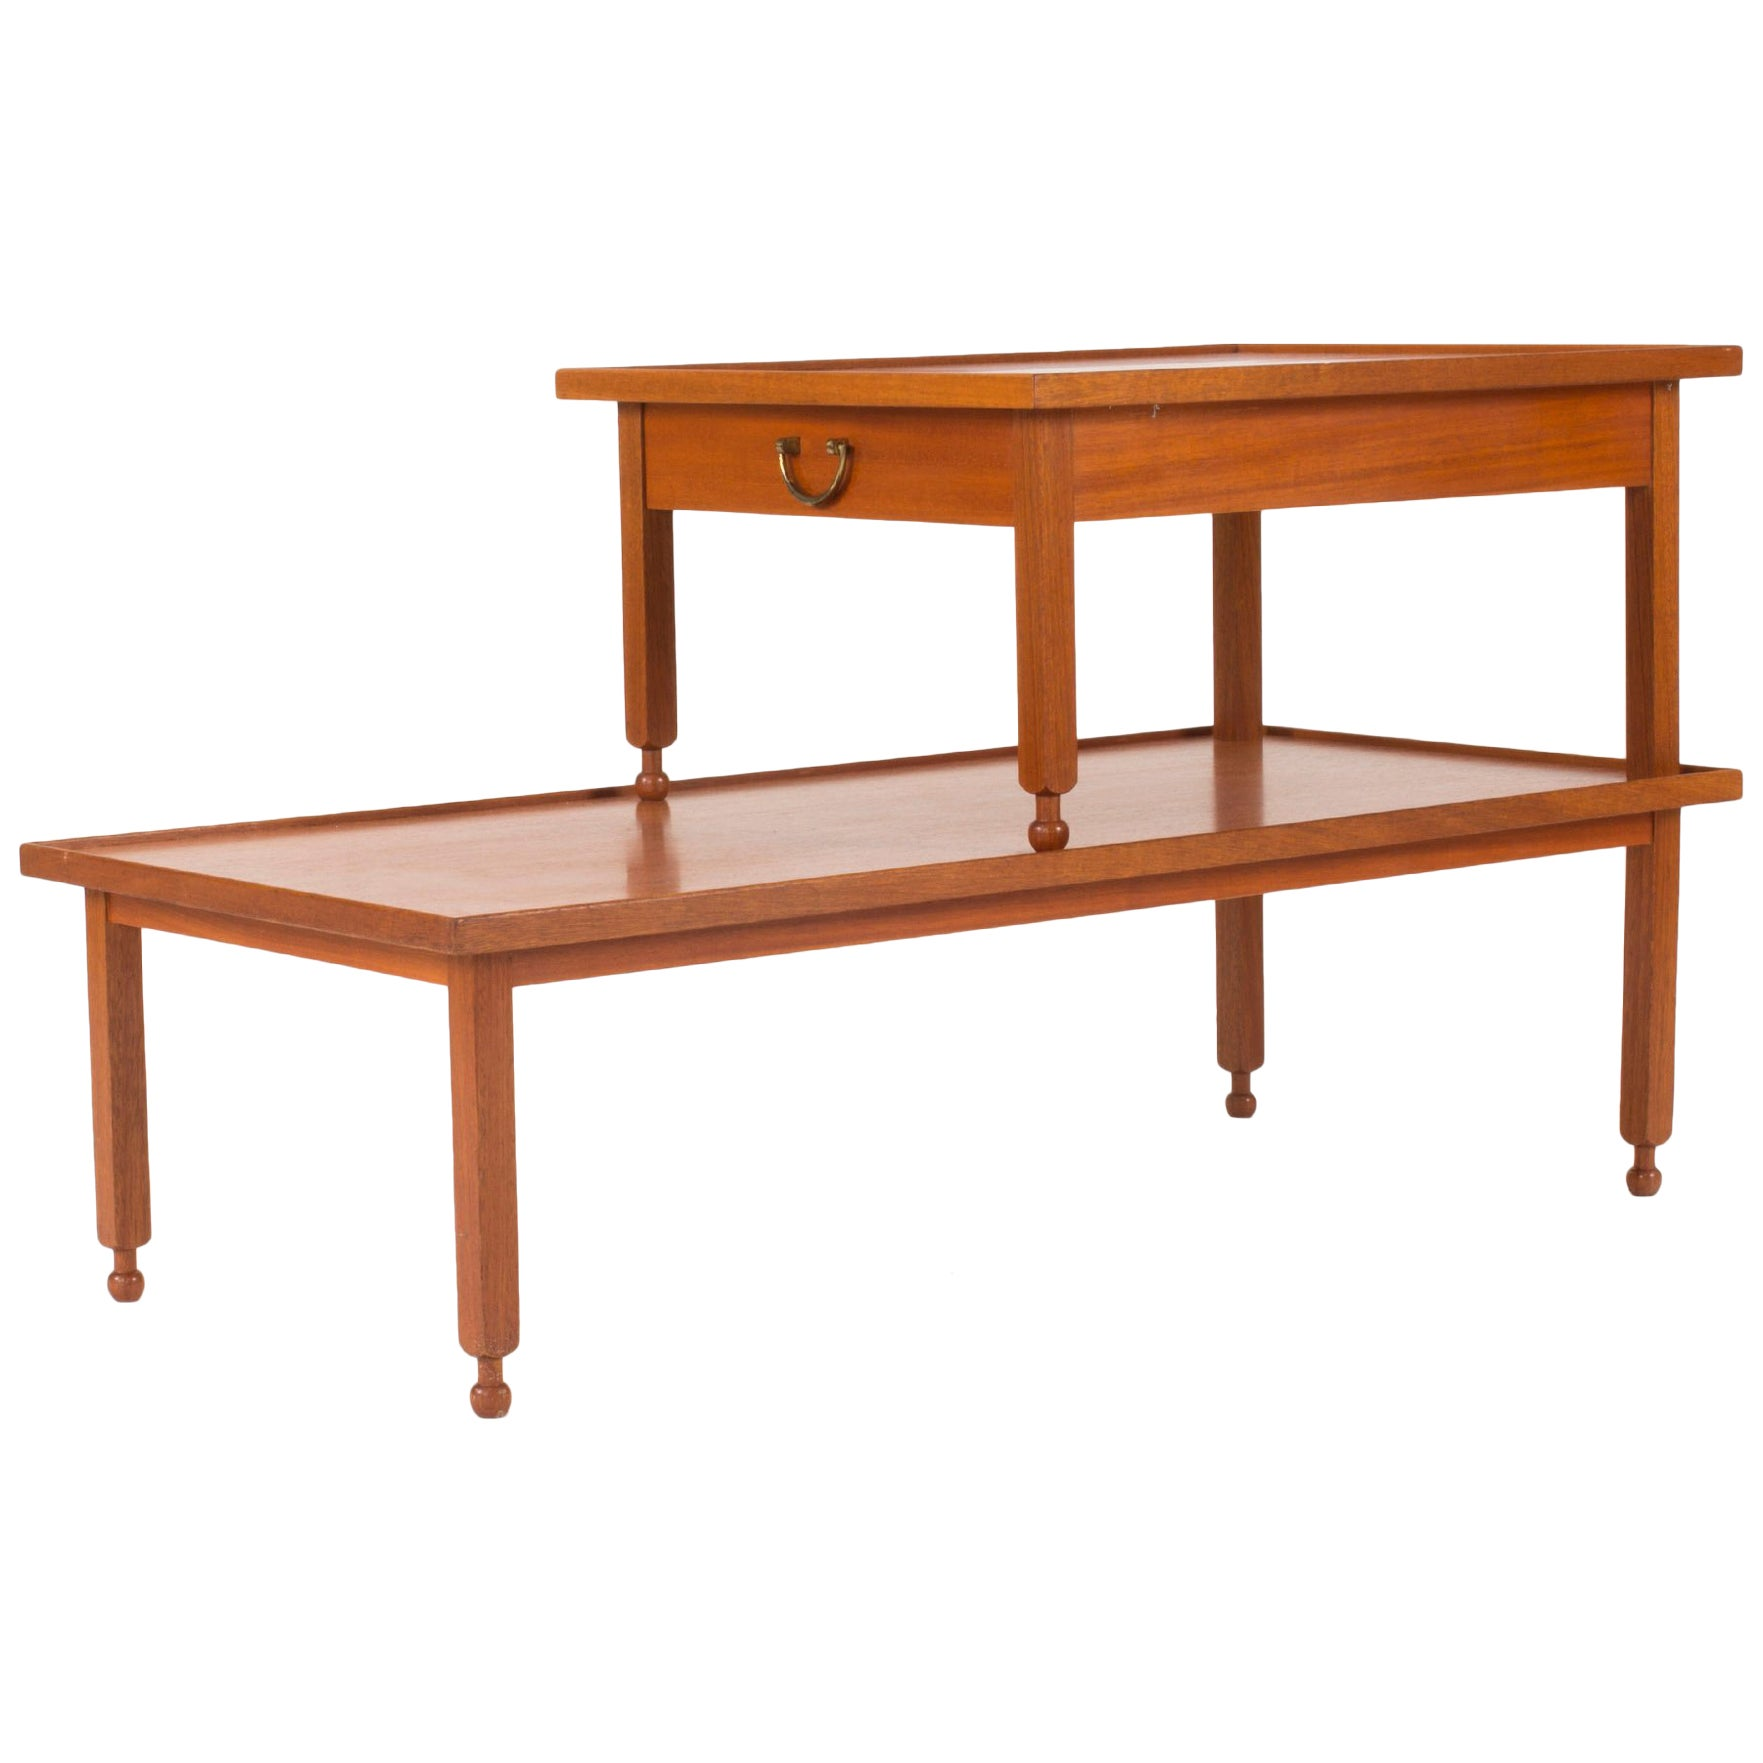 Mahogany Side Table with a Drawer by Josef Frank